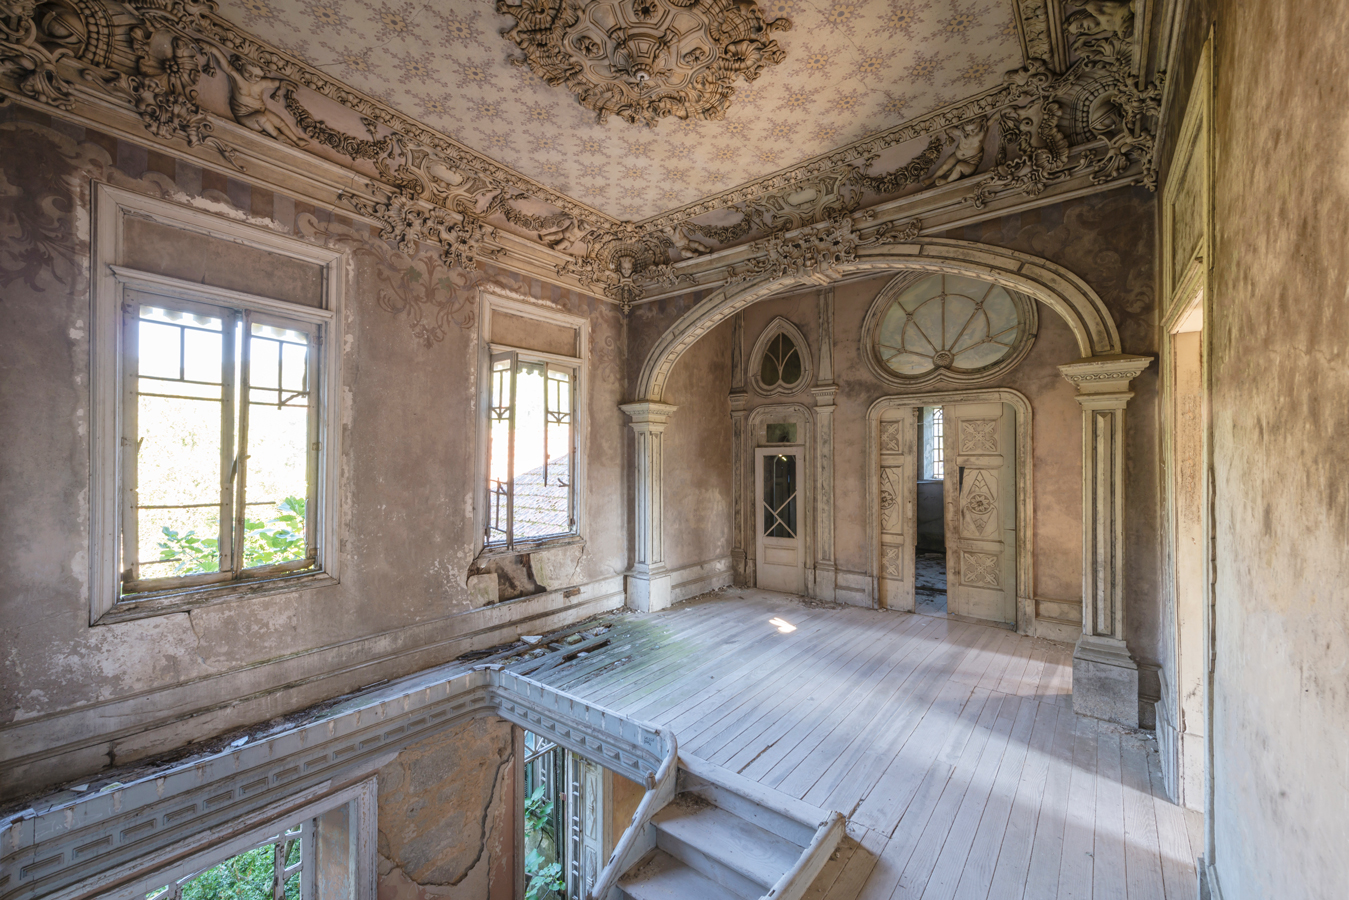 Photographer: Romain Veillon & Abandoned Spaces Around the World